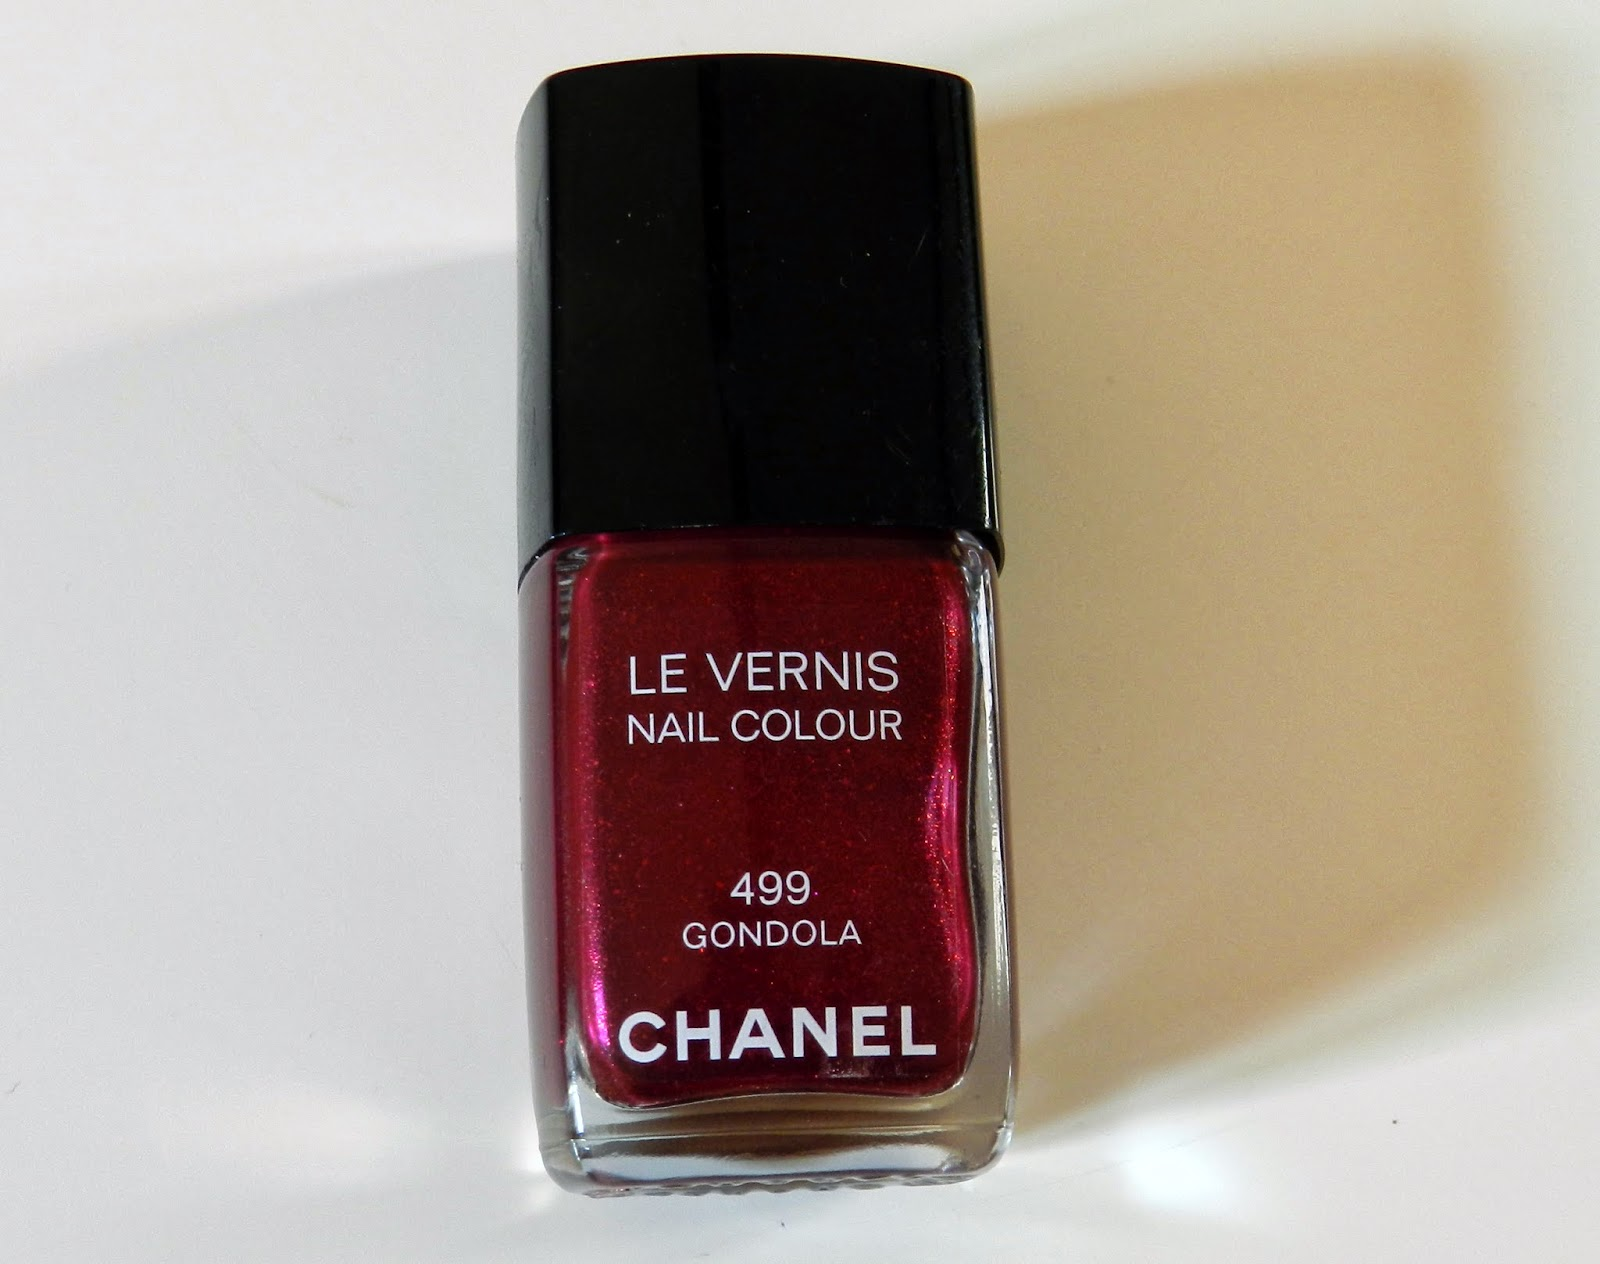 Chanel Nail Polish Gondola 499